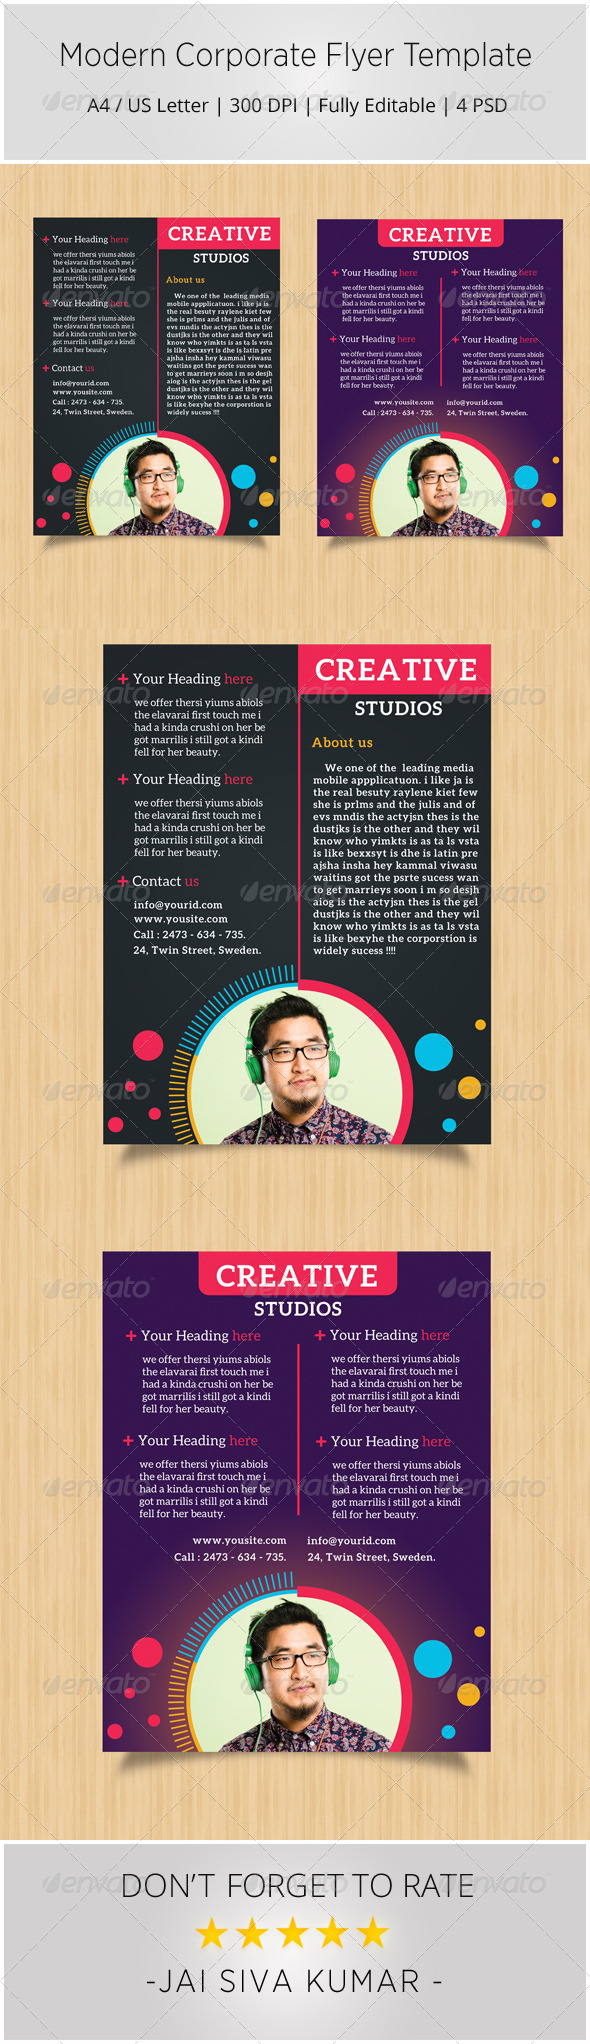 GraphicRiver Modern Corporate Flyer Template 6793324